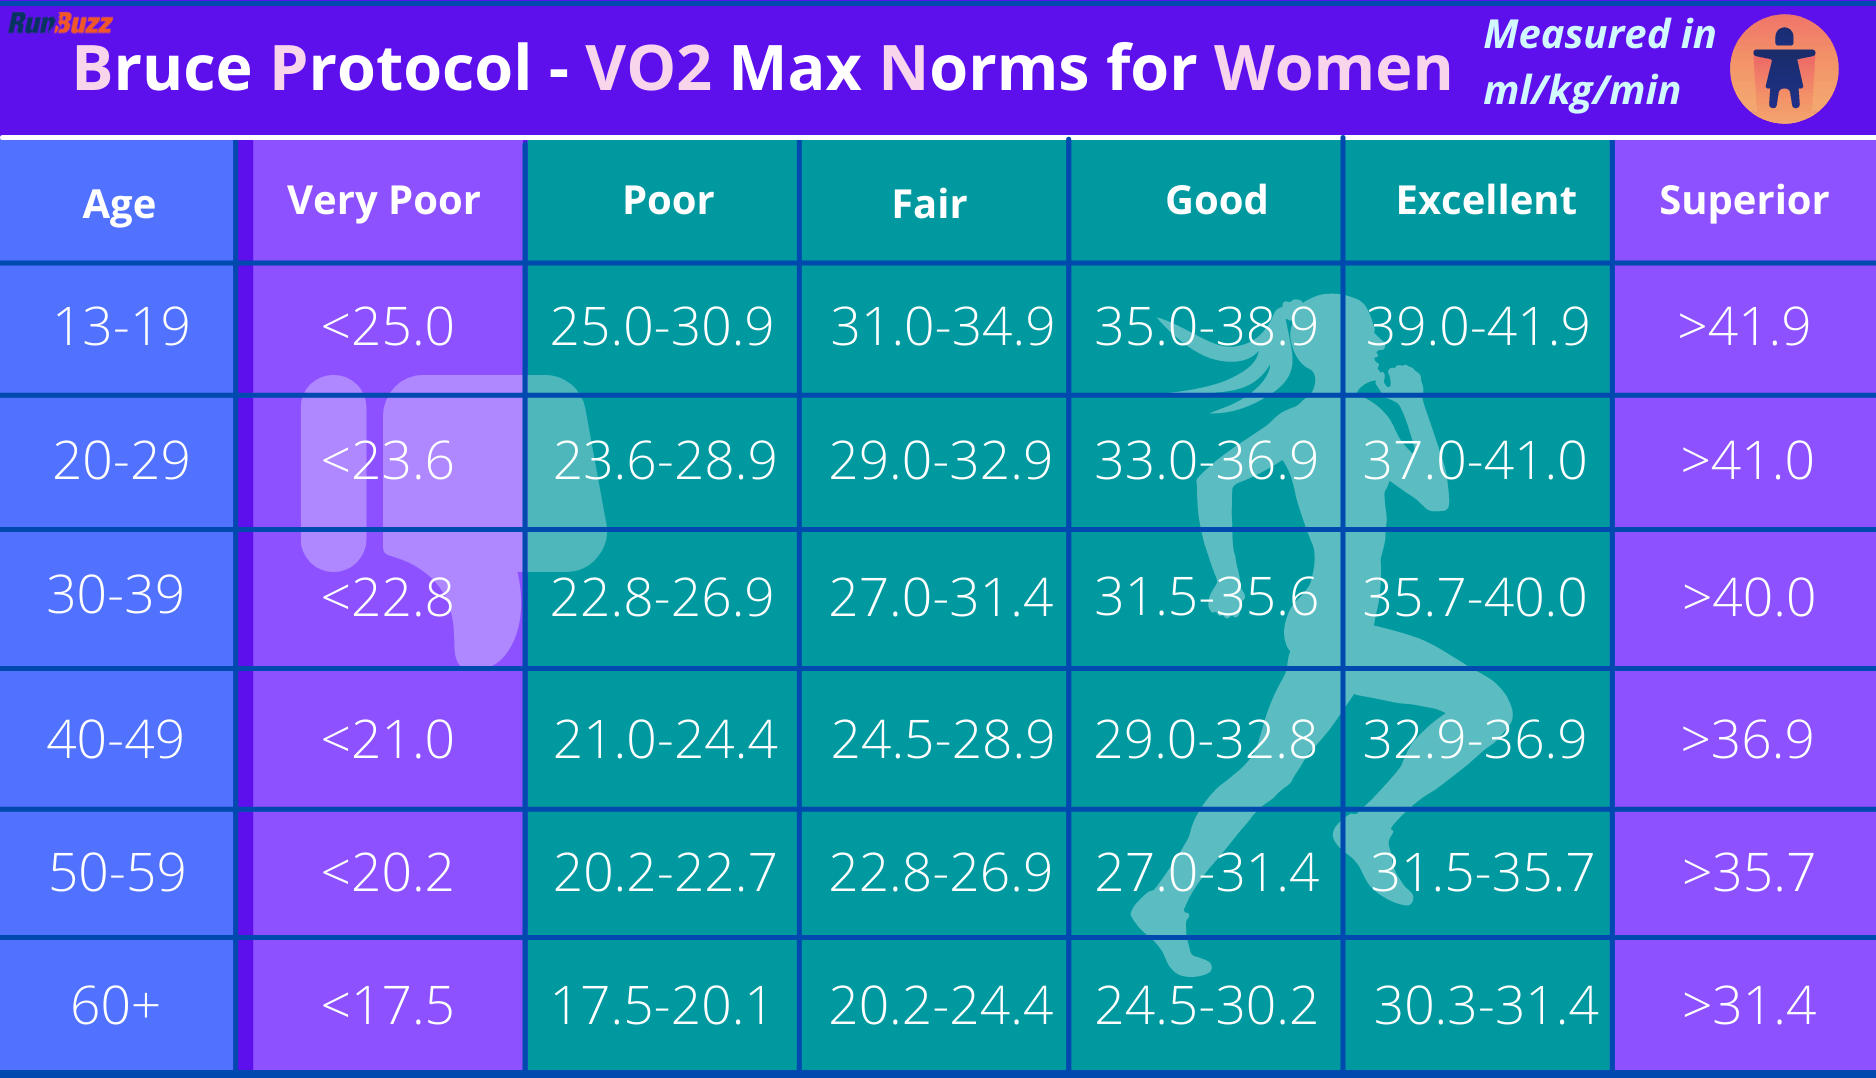 Bruce-Protocol-VO2-Max-Norms-for-Women